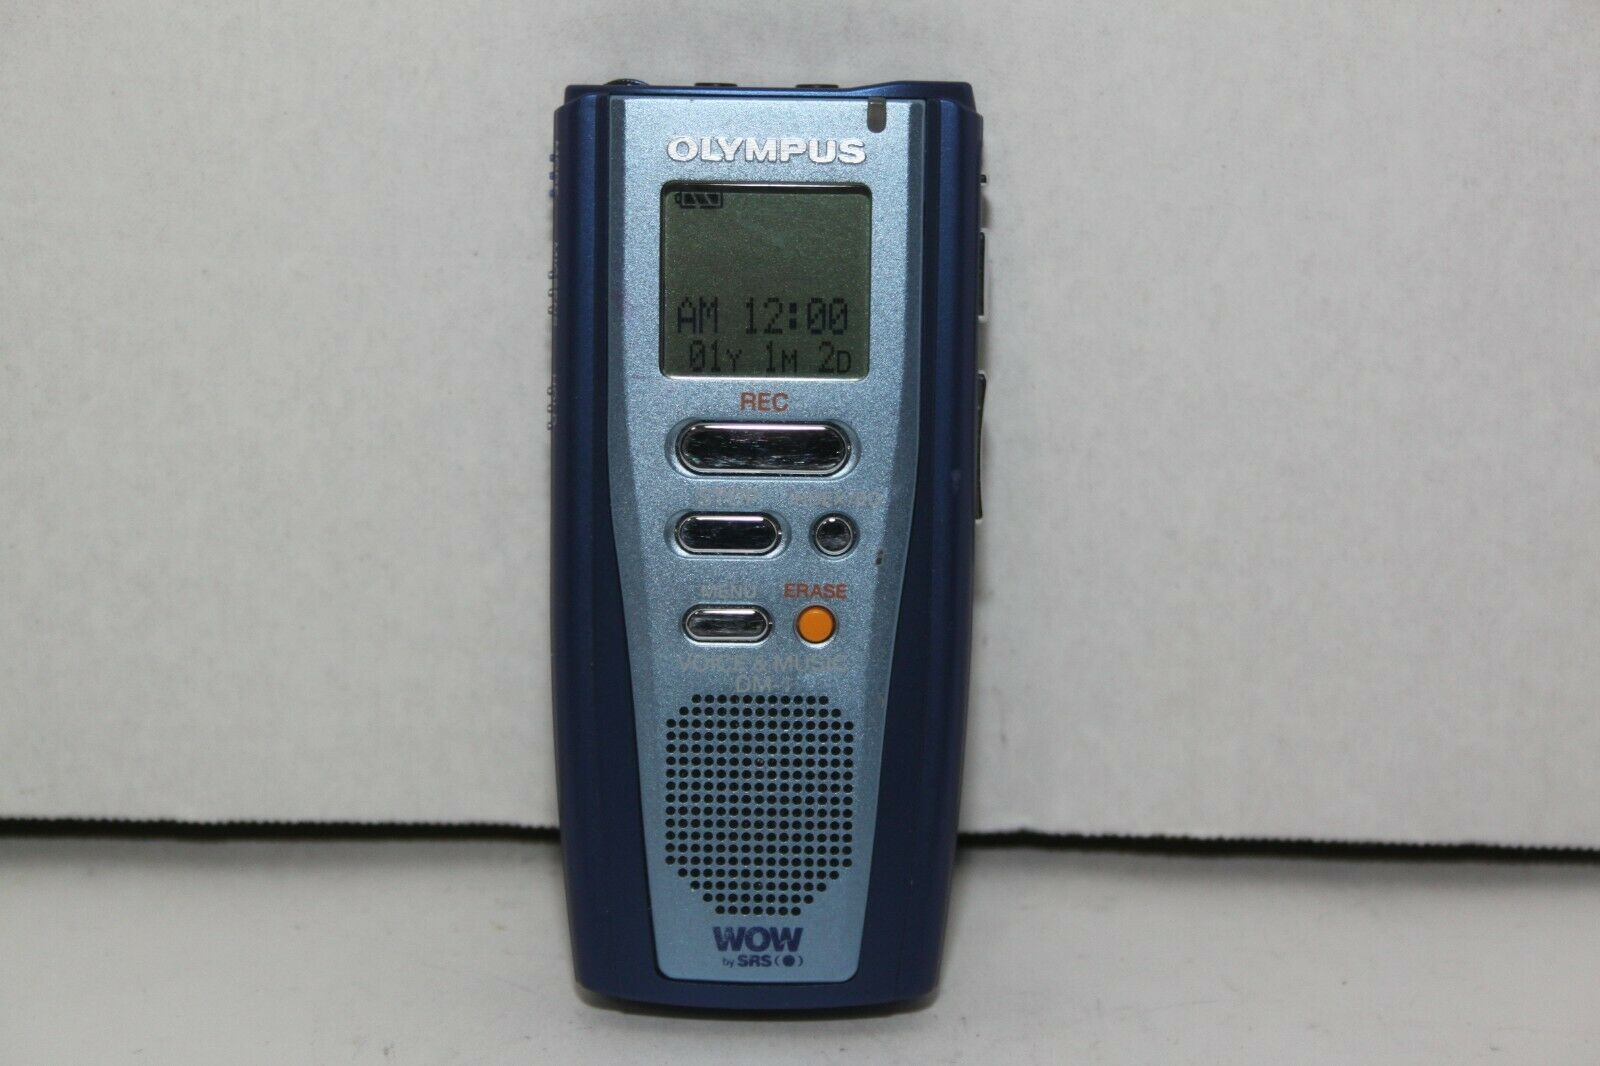 Olympus DM-10 (64 MB, 22 Hours) Handheld Digital Voice Recorder